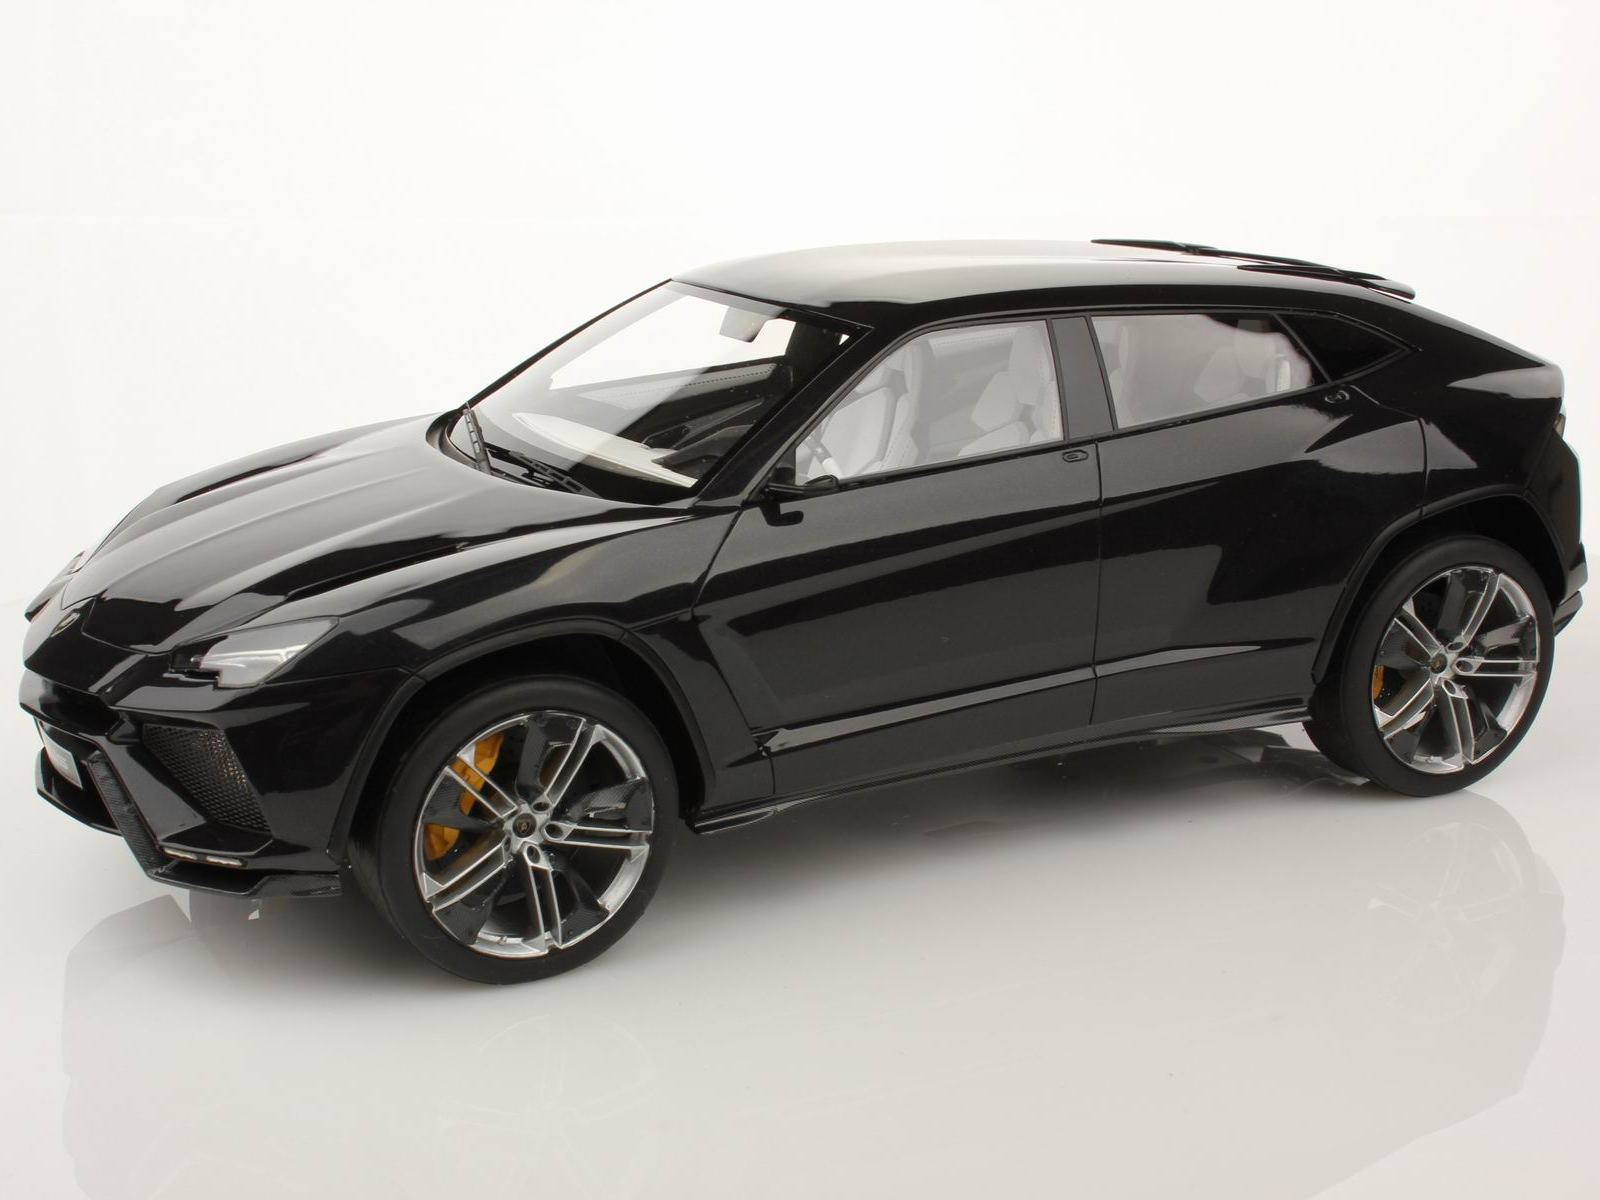 lamborghini urus production officially confirmed for 2018 autoevolution. Black Bedroom Furniture Sets. Home Design Ideas